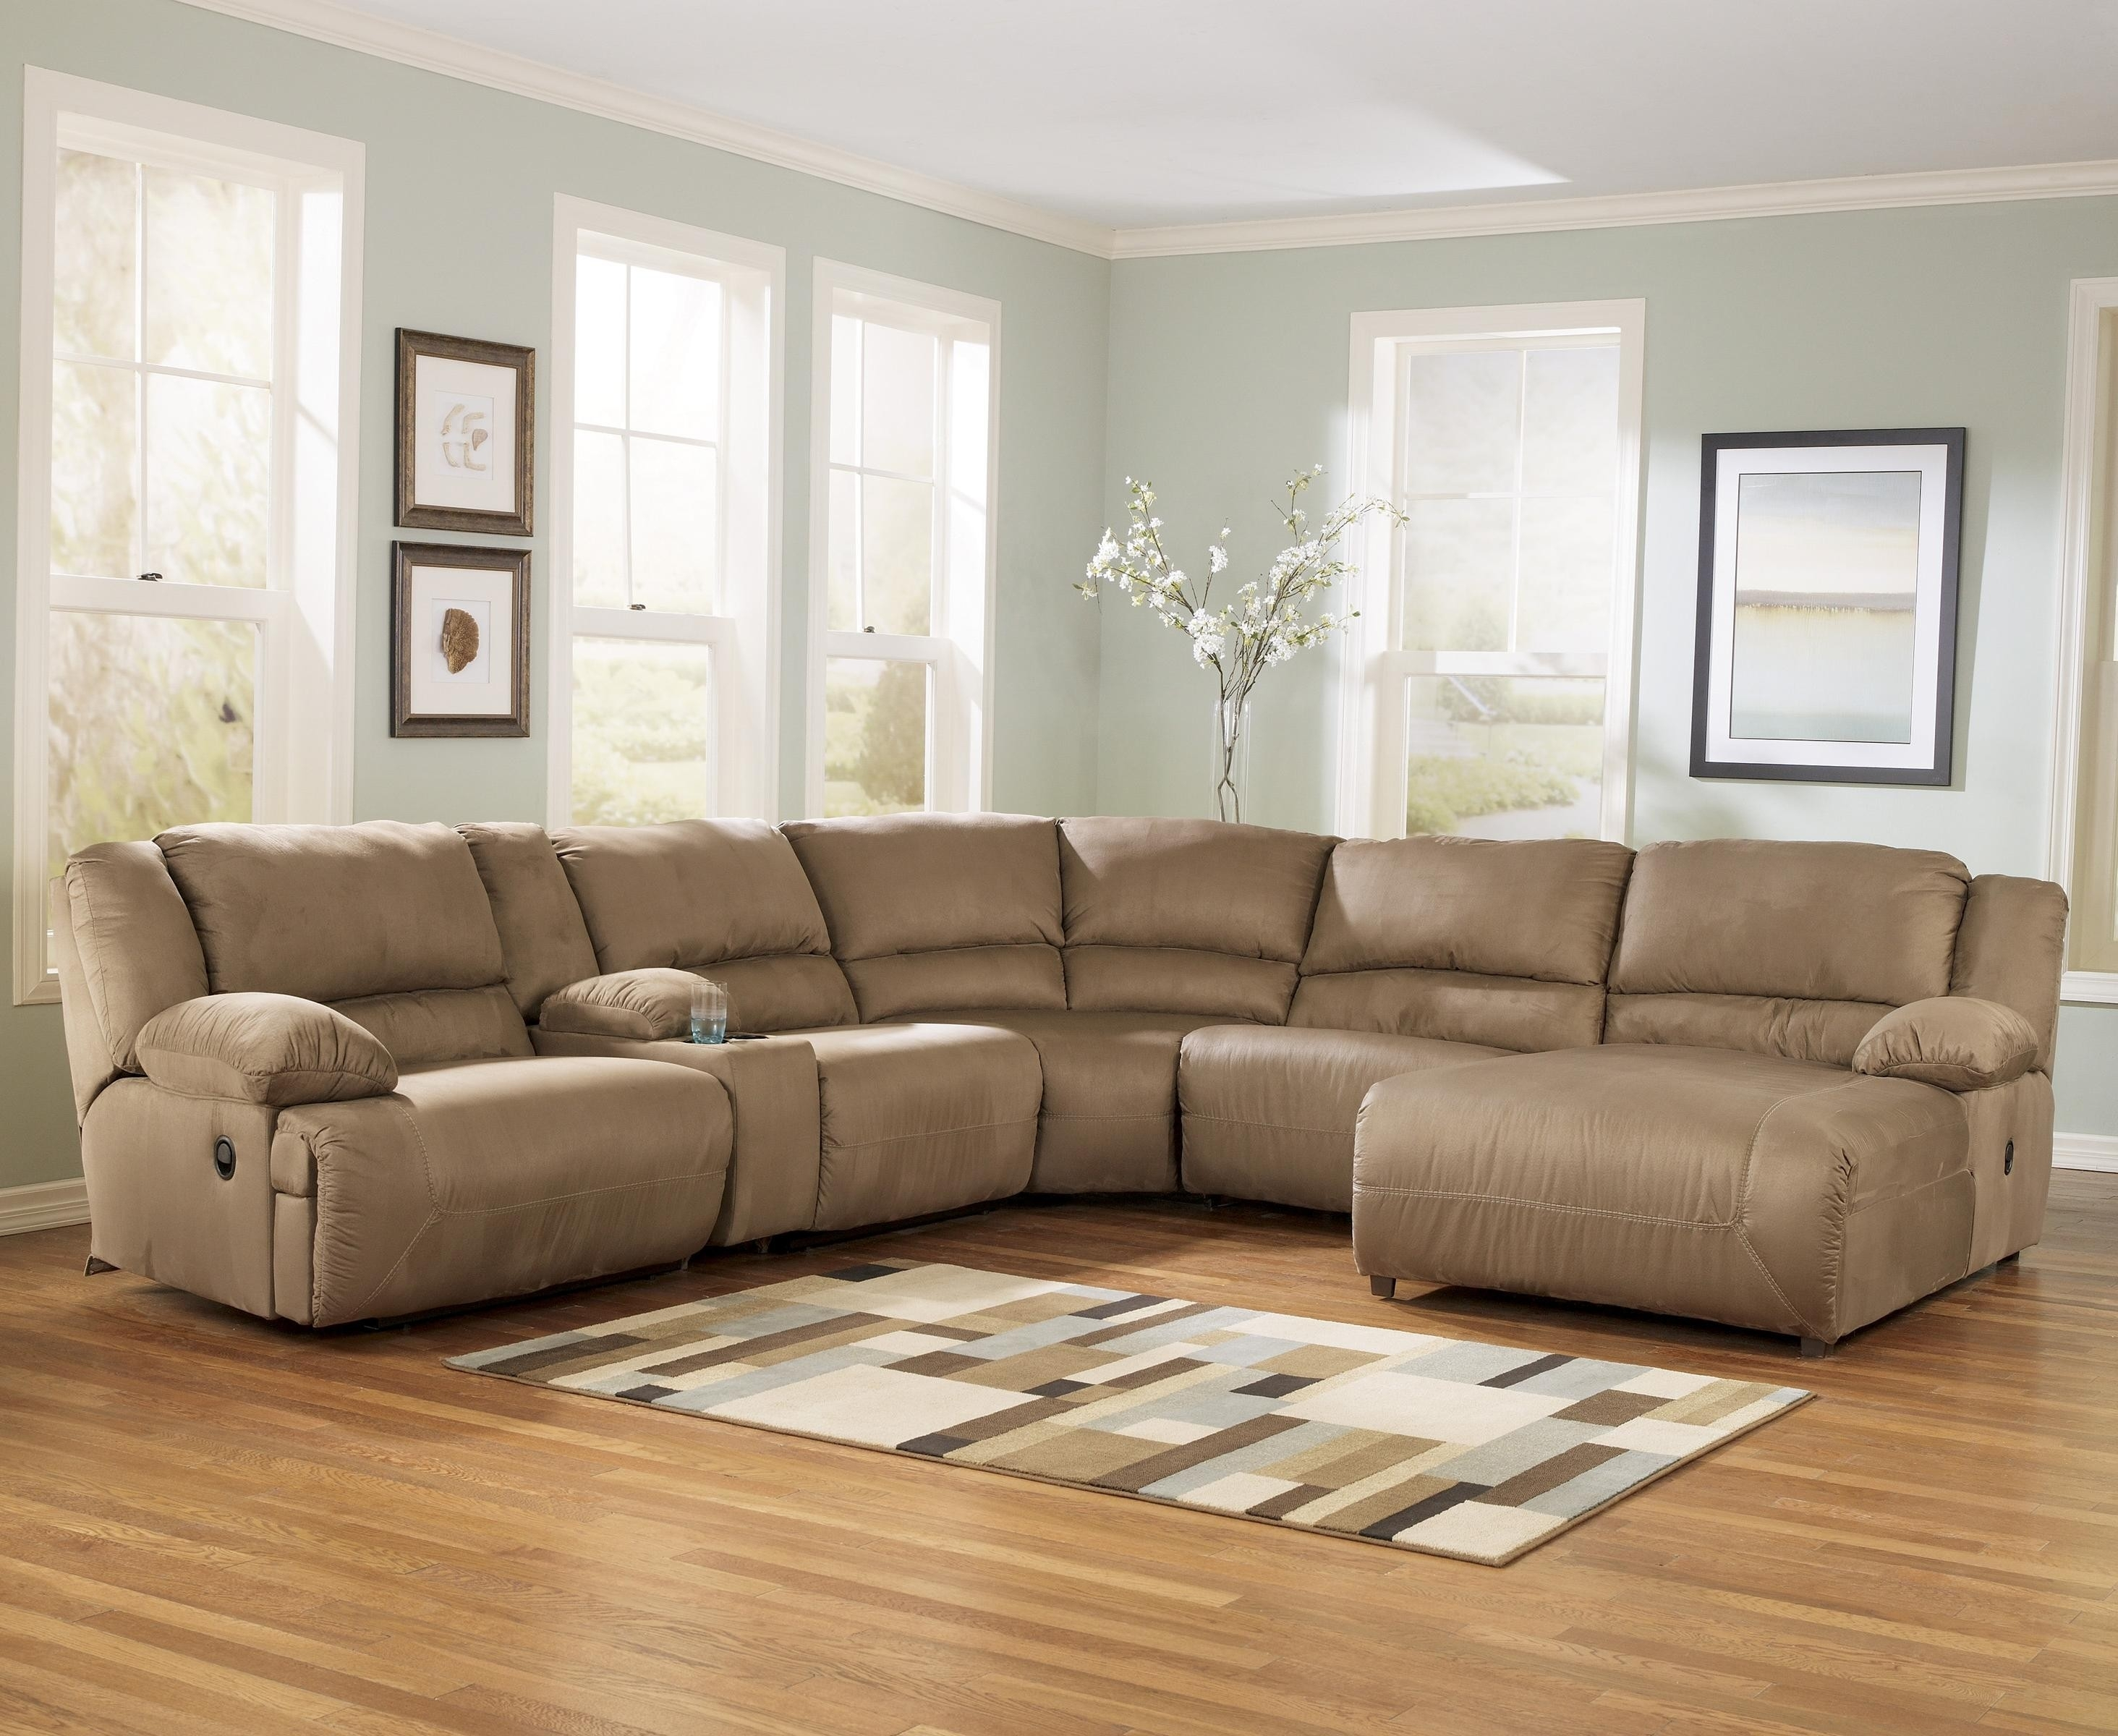 6 Piece Sectional Couch Marcus Grey W Power Headrest Usb Living Intended For Marcus Grey 6 Piece Sectionals With  Power Headrest & Usb (Photo 21 of 25)